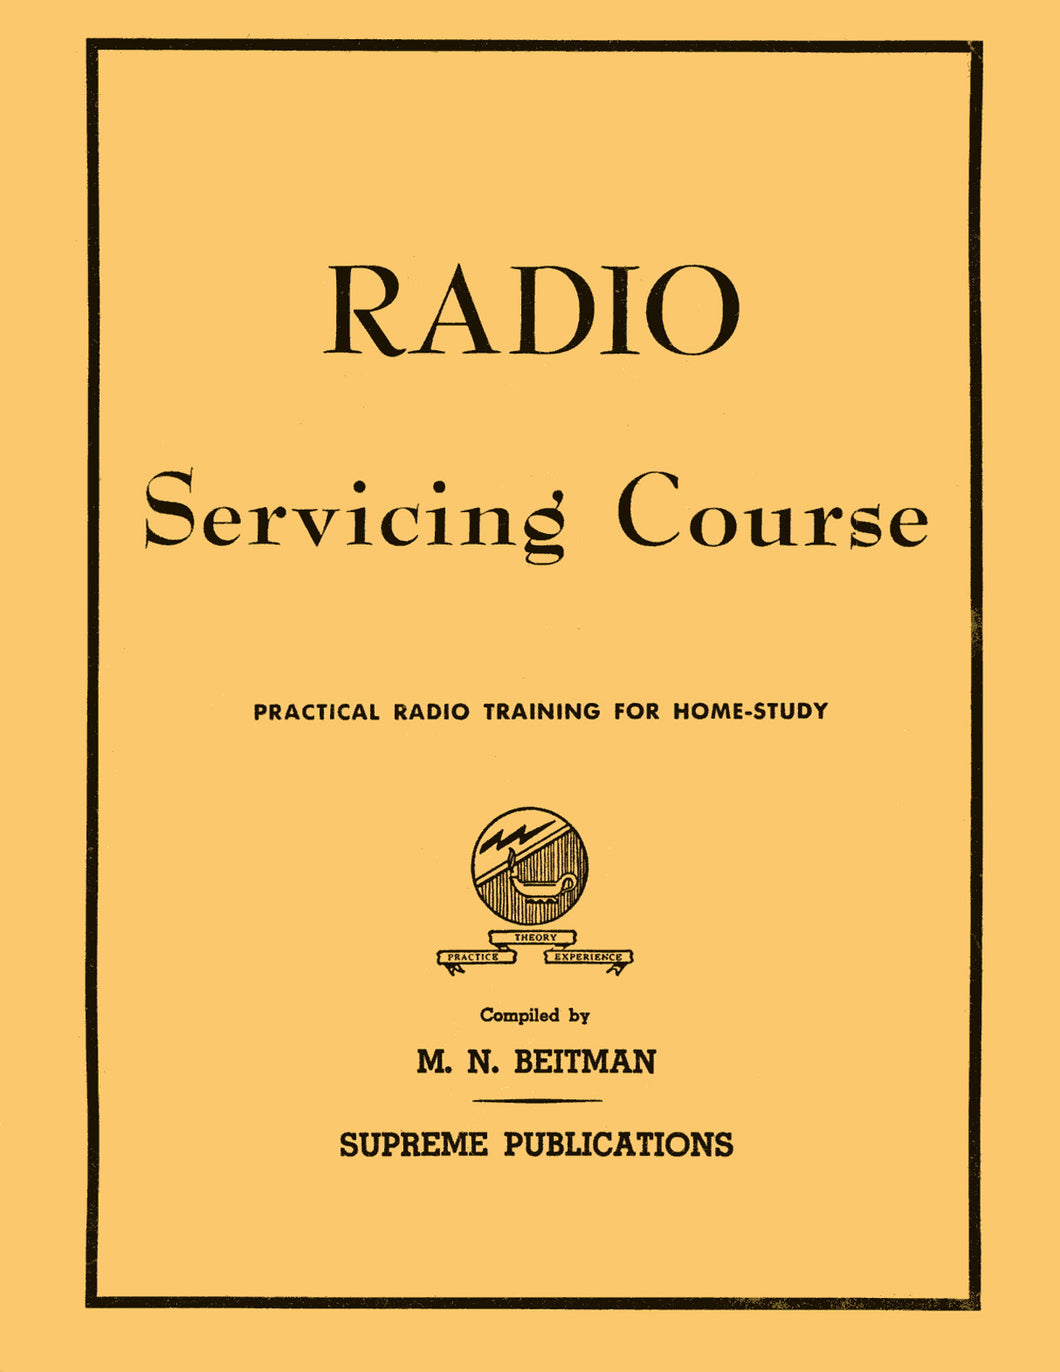 Radio Servicing Course: Practical Radio Training for Home Study